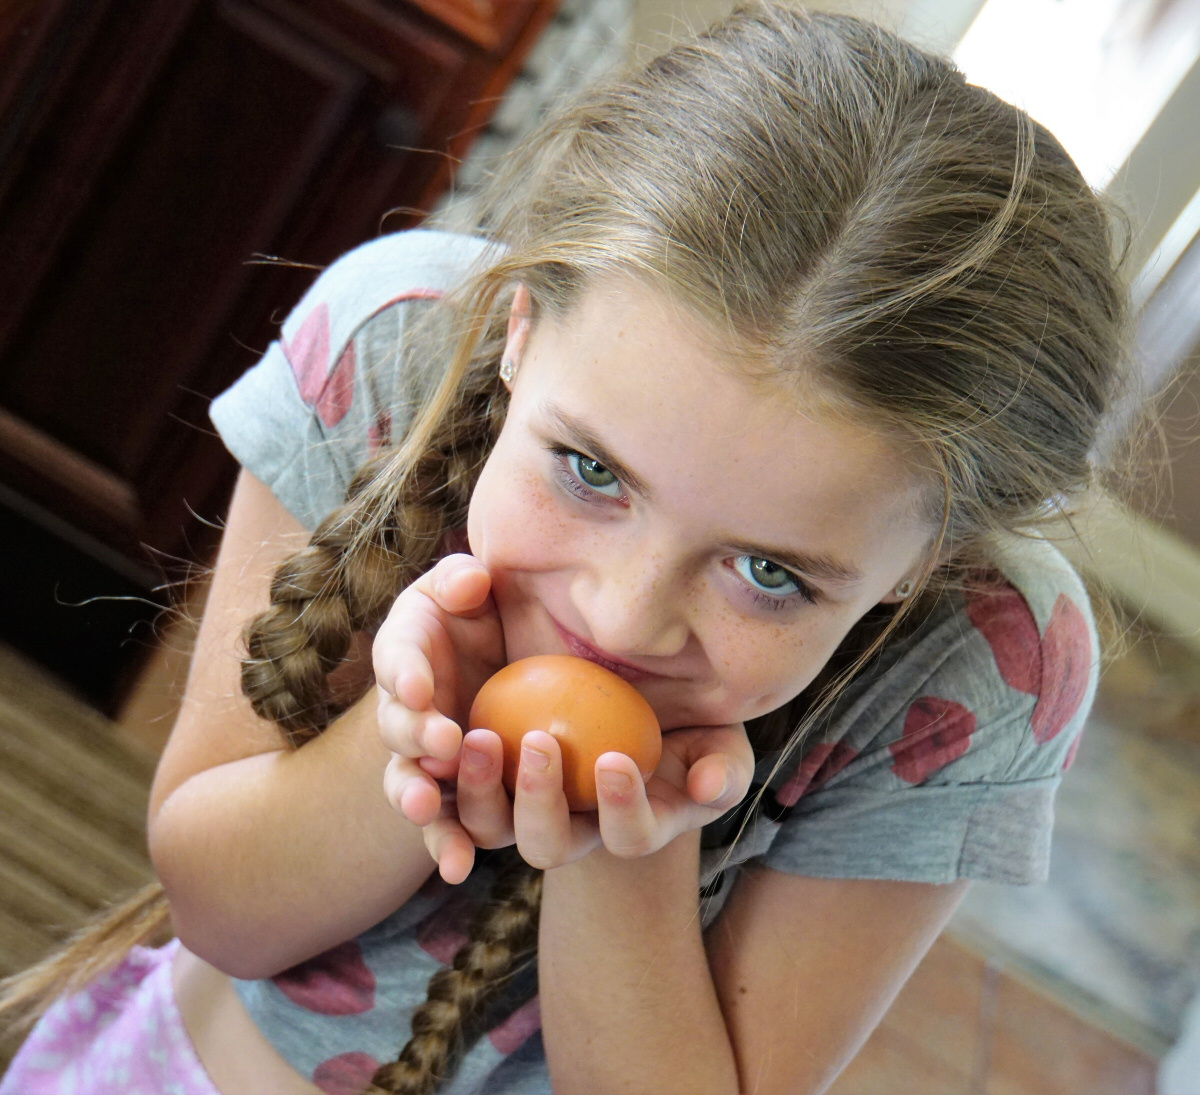 Healthy Kids Without The Complaining - Is It Possible?